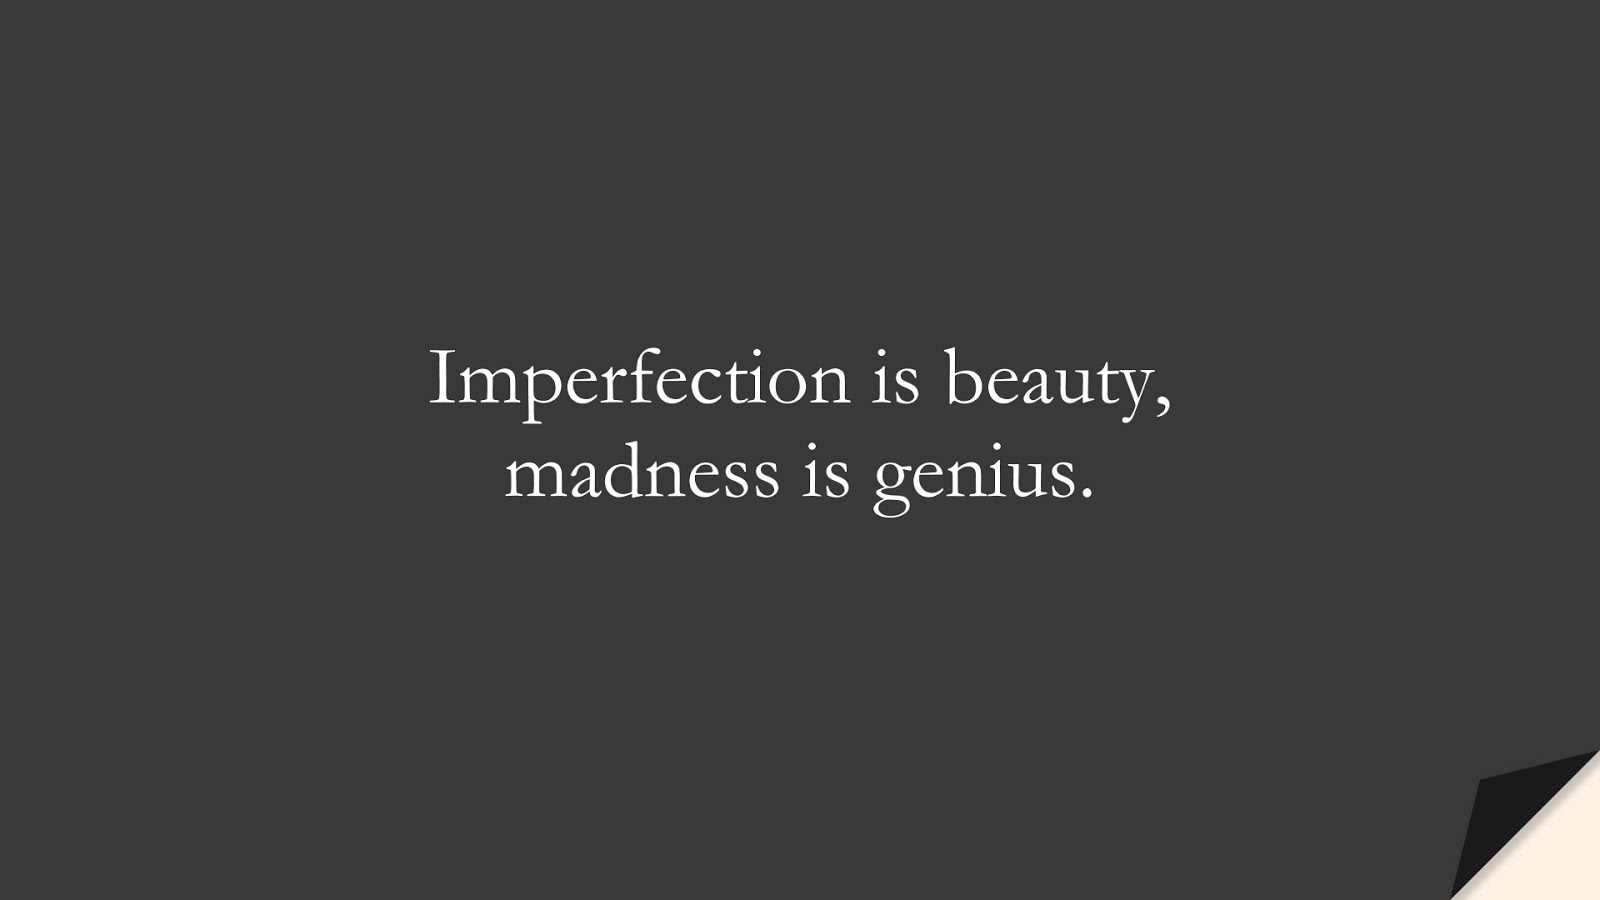 Imperfection is beauty, madness is genius.FALSE